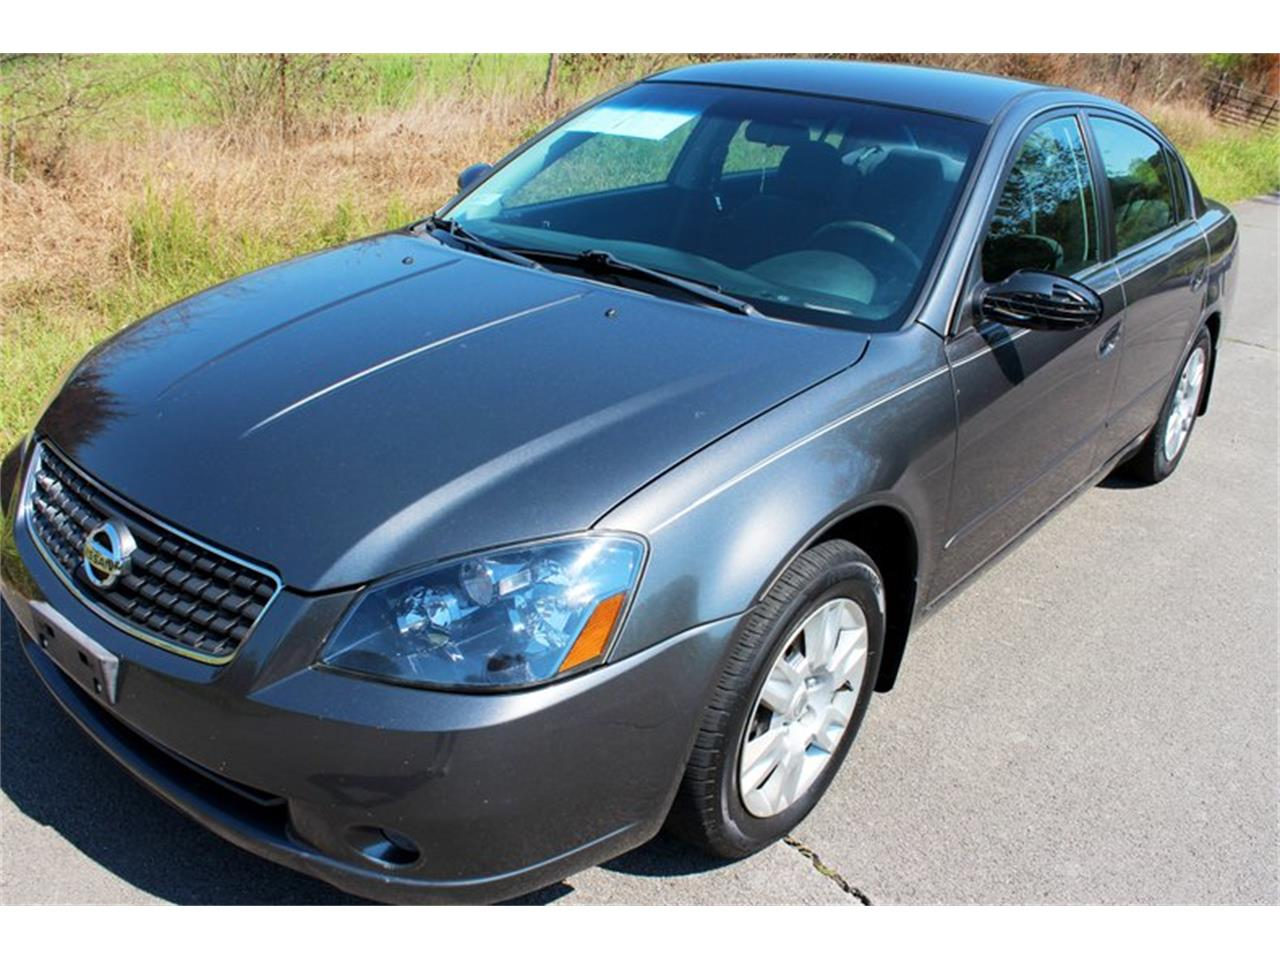 2006 nissan altima lenoir tennessee classic cc classiccars financing inspection insurance transport